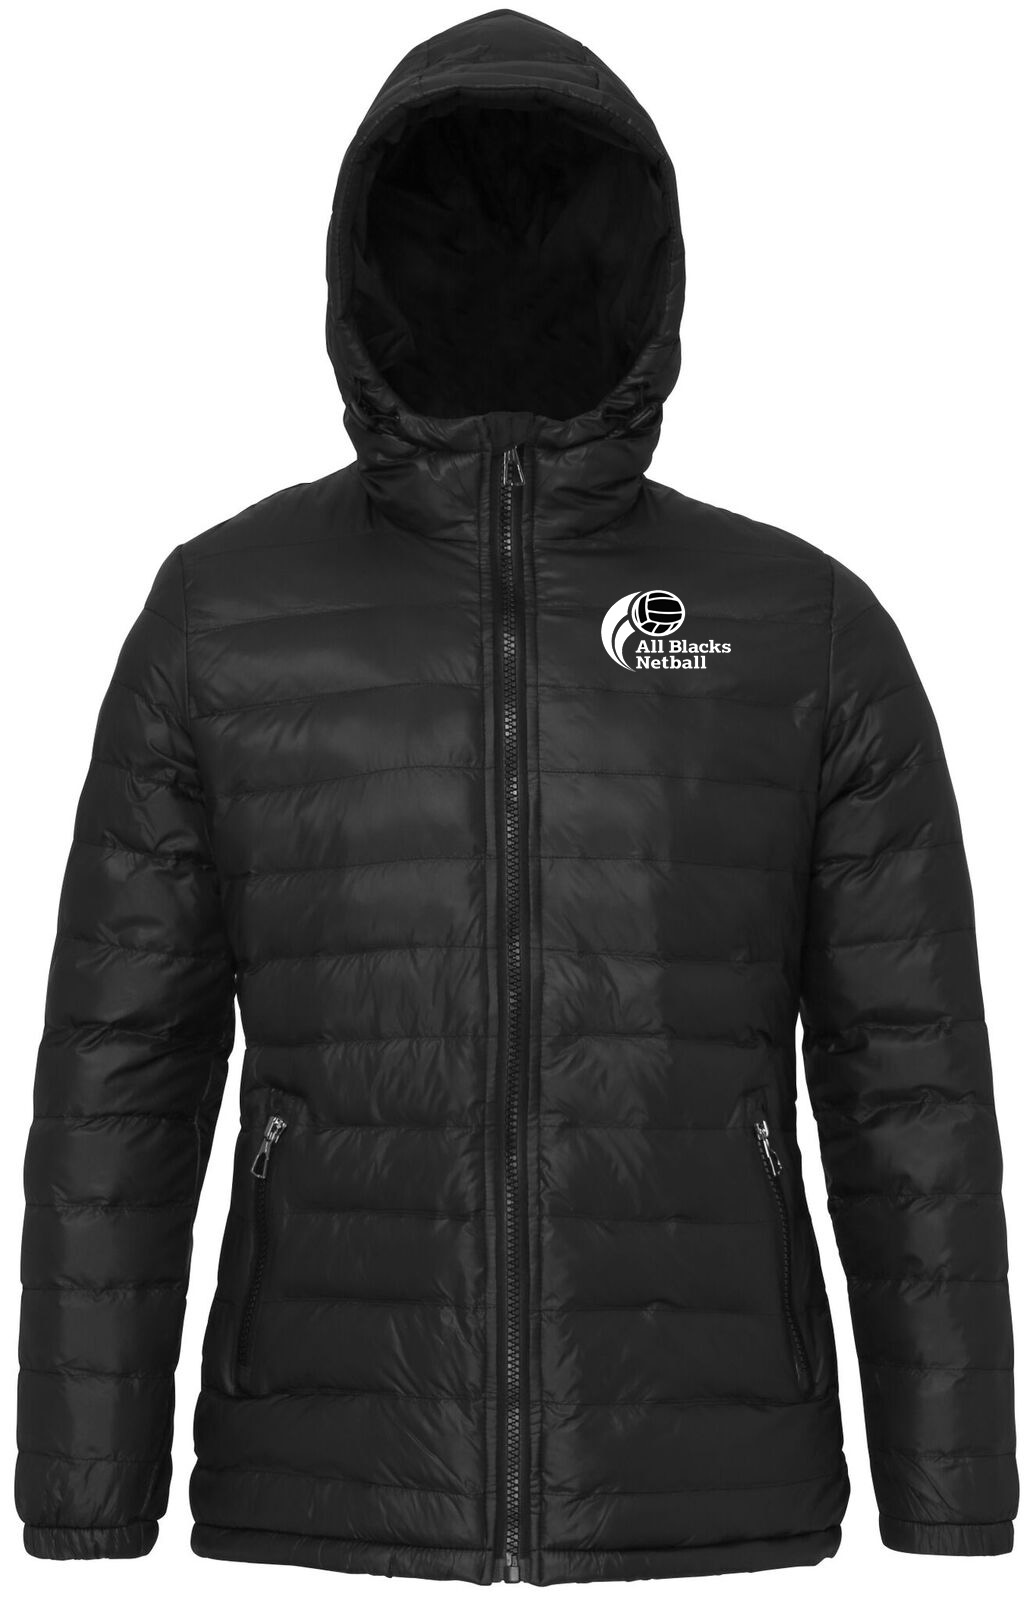 All Blacks Snowbird Jacket